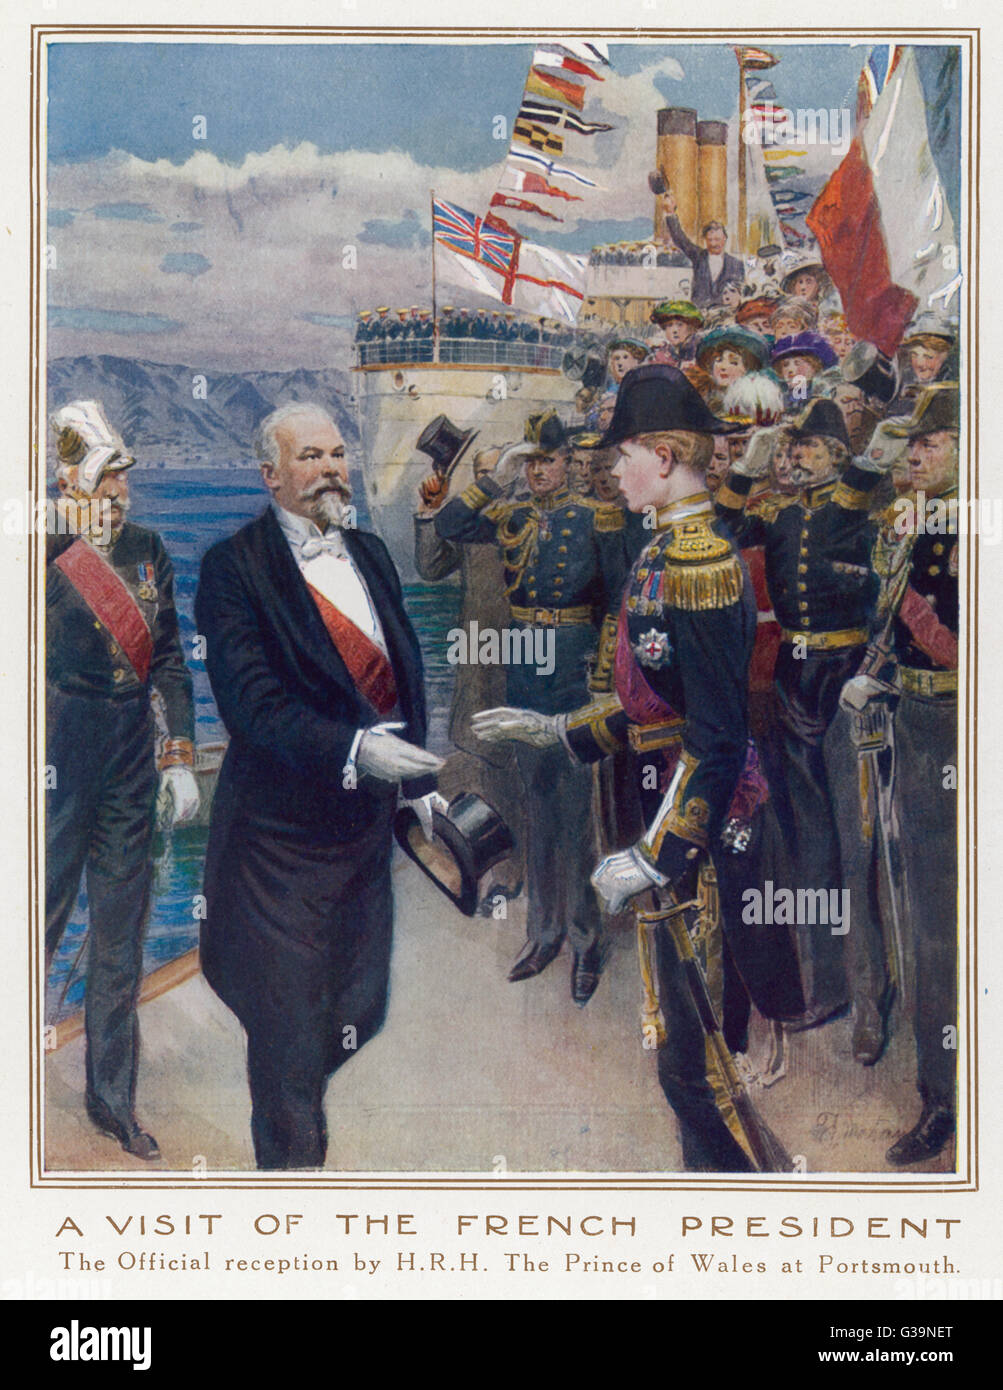 The French President,  Poincare, is officially  received by the Prince of  Wales at Portsmouth       Date: circa - Stock Image